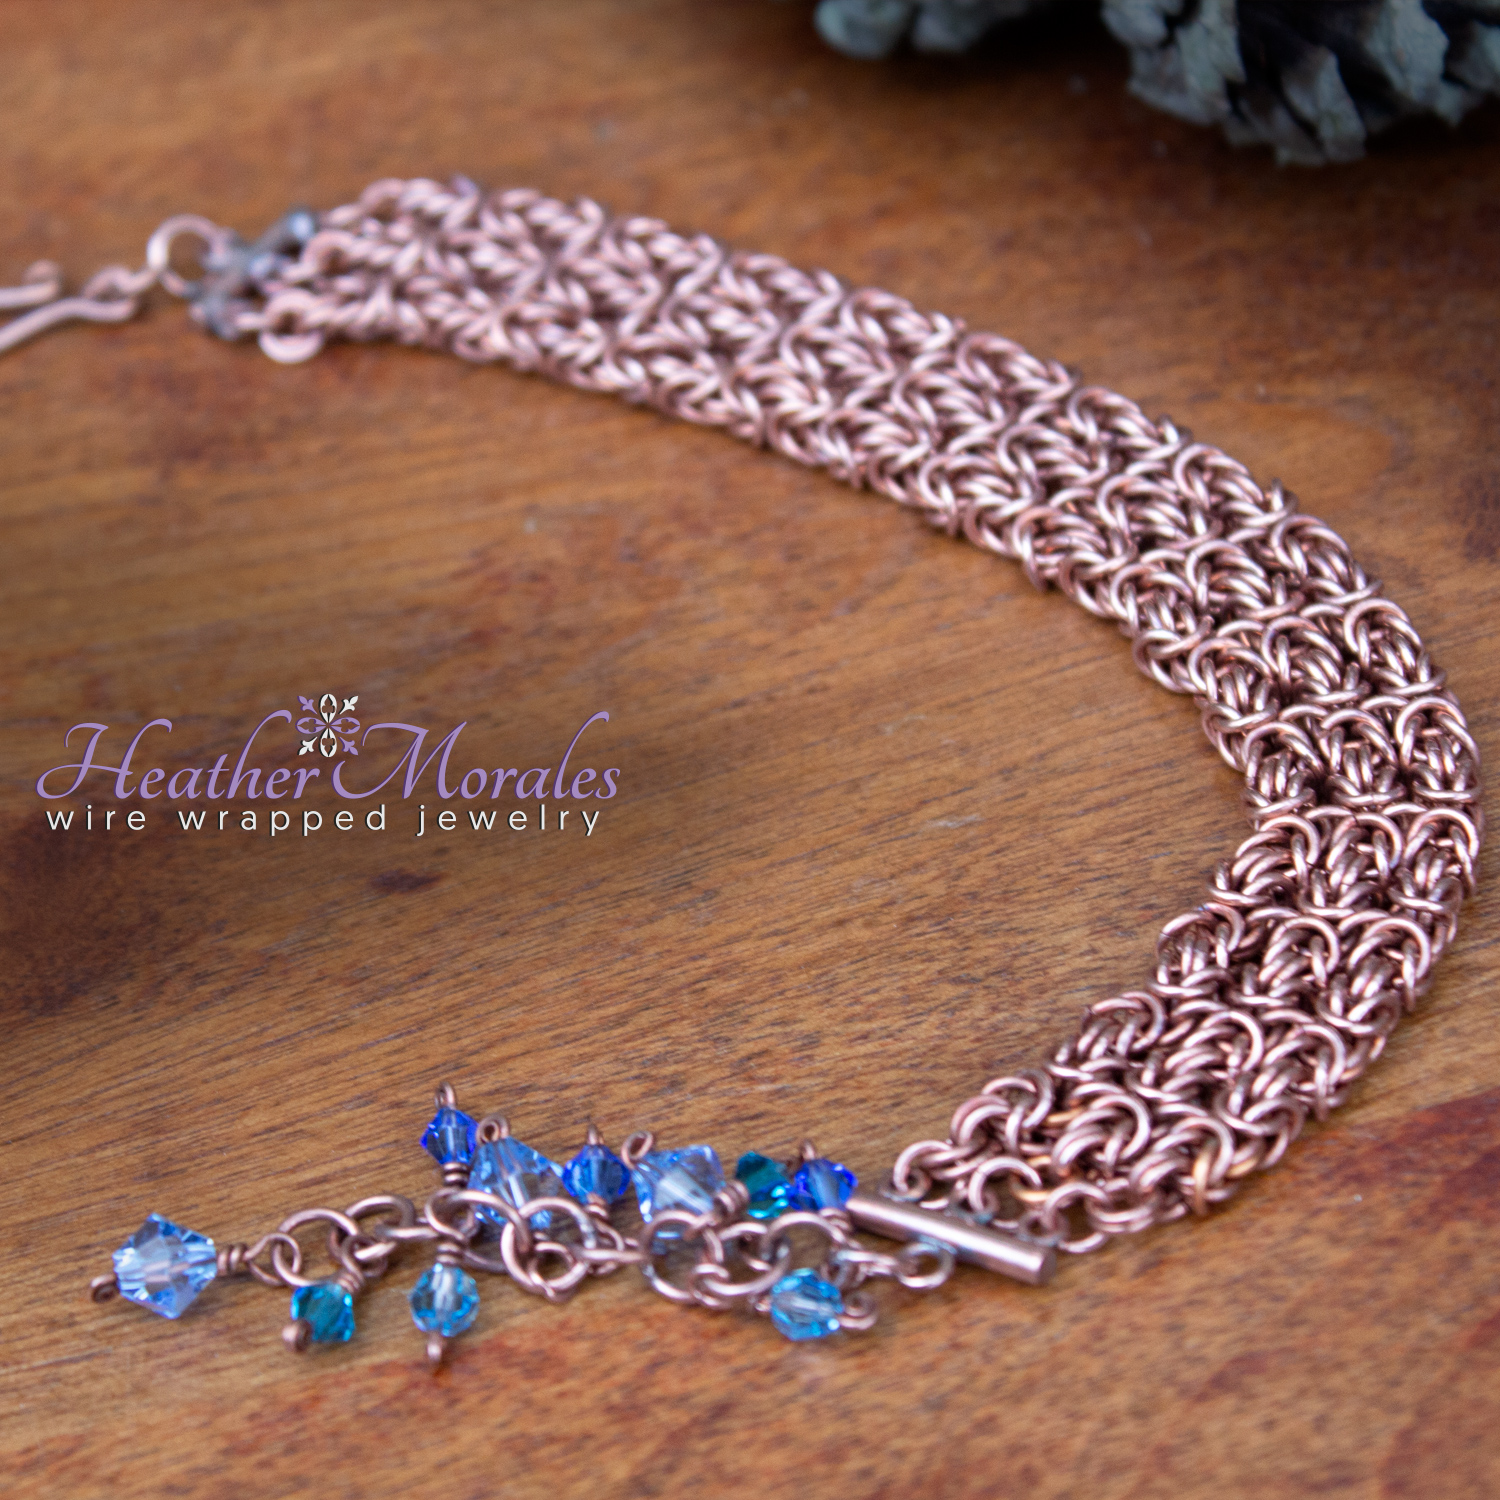 Copper Byzantine Bracelet with various blue Swarovski crystal beads